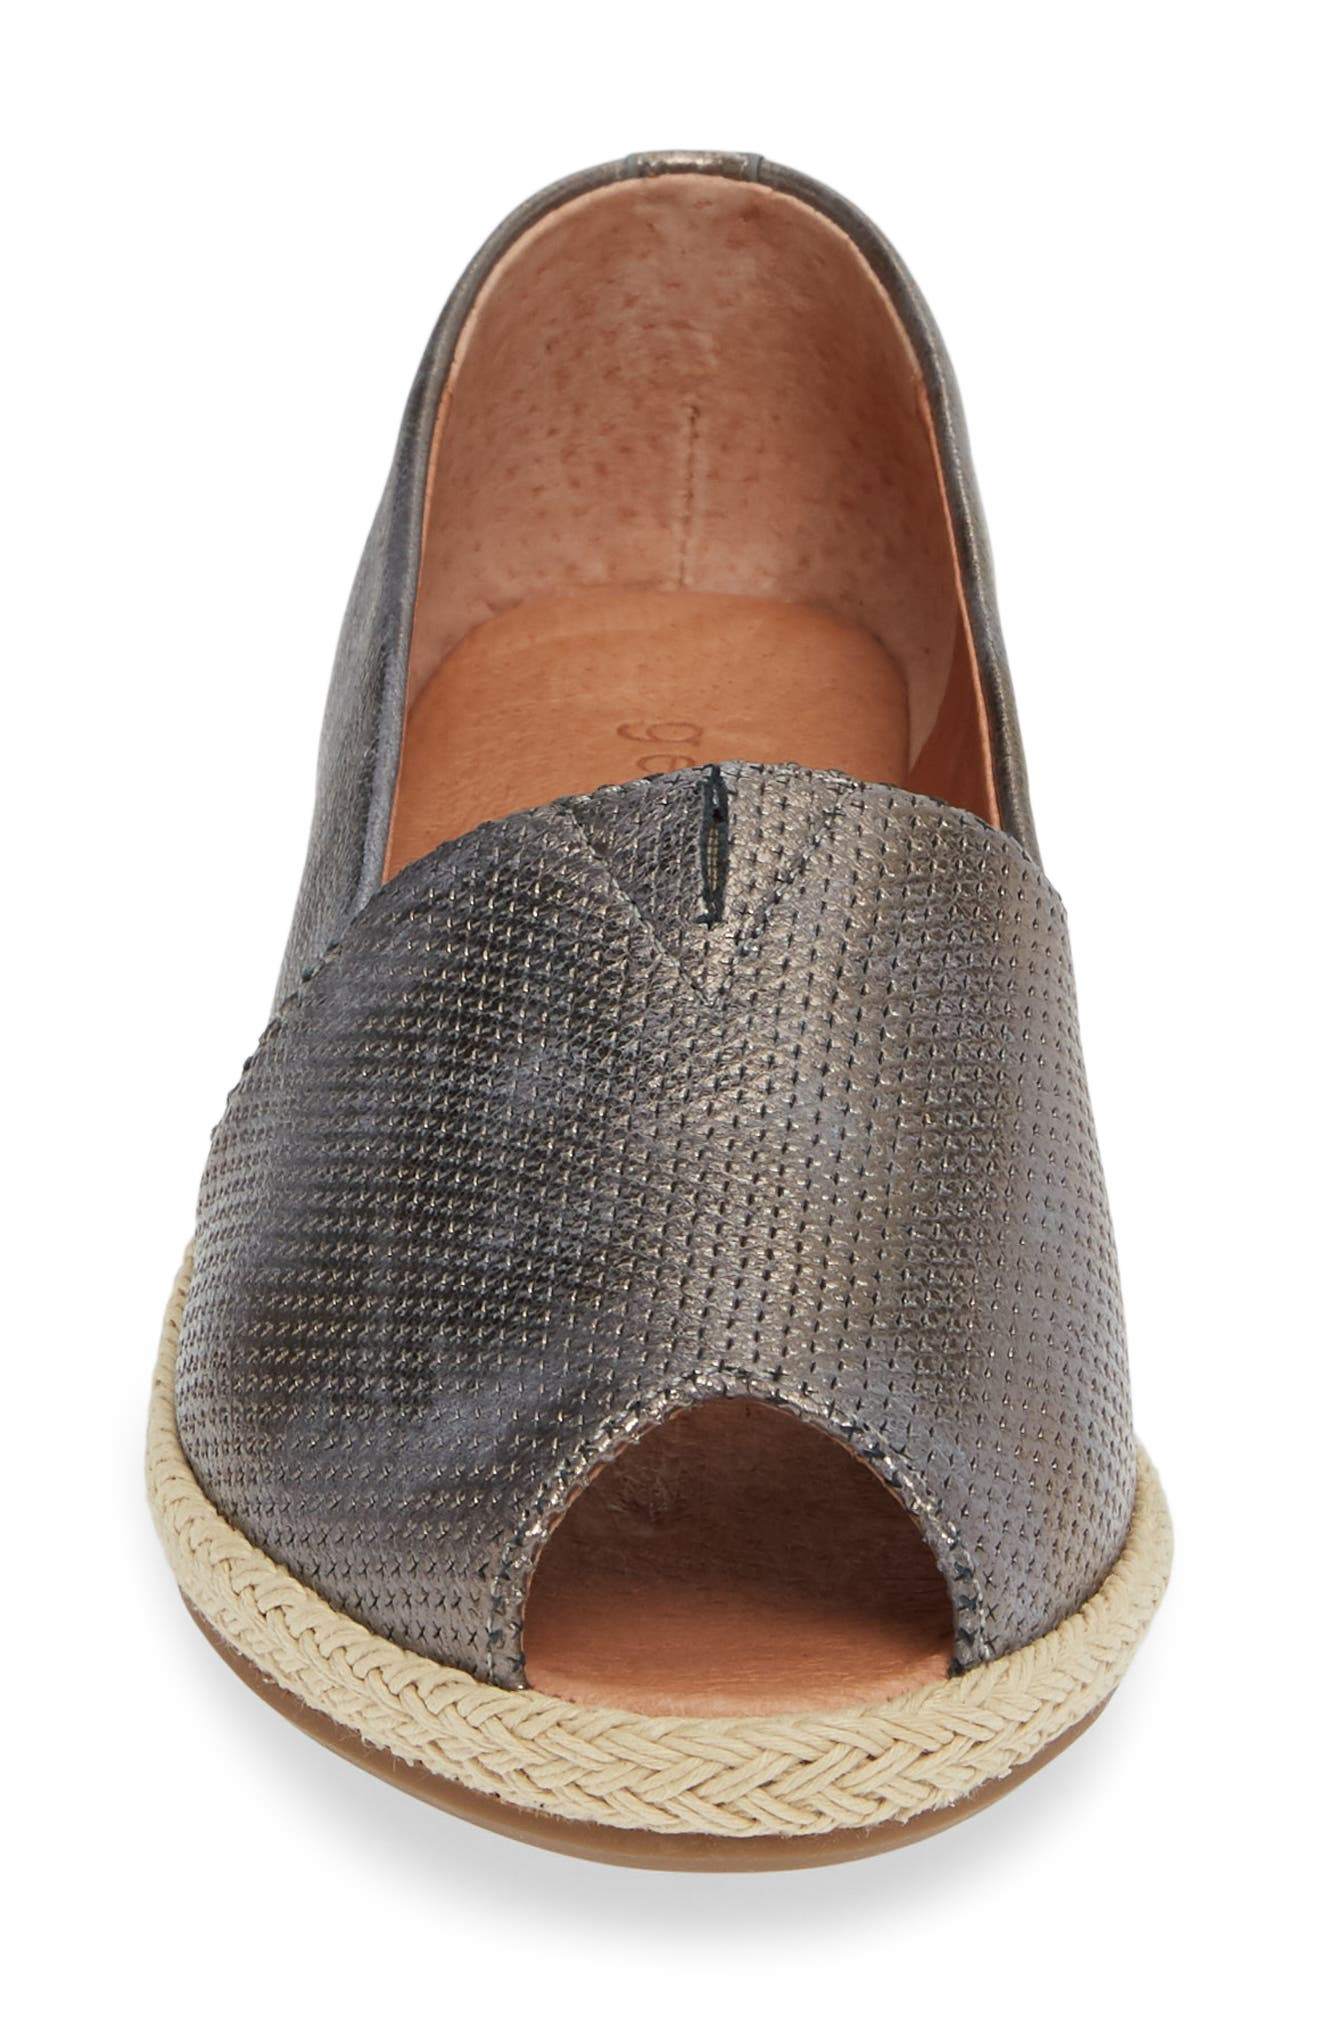 GENTLE SOULS BY KENNETH COLE, Luca Open Toe Wedge Espadrille, Alternate thumbnail 4, color, PEWTER METALLIC LEATHER